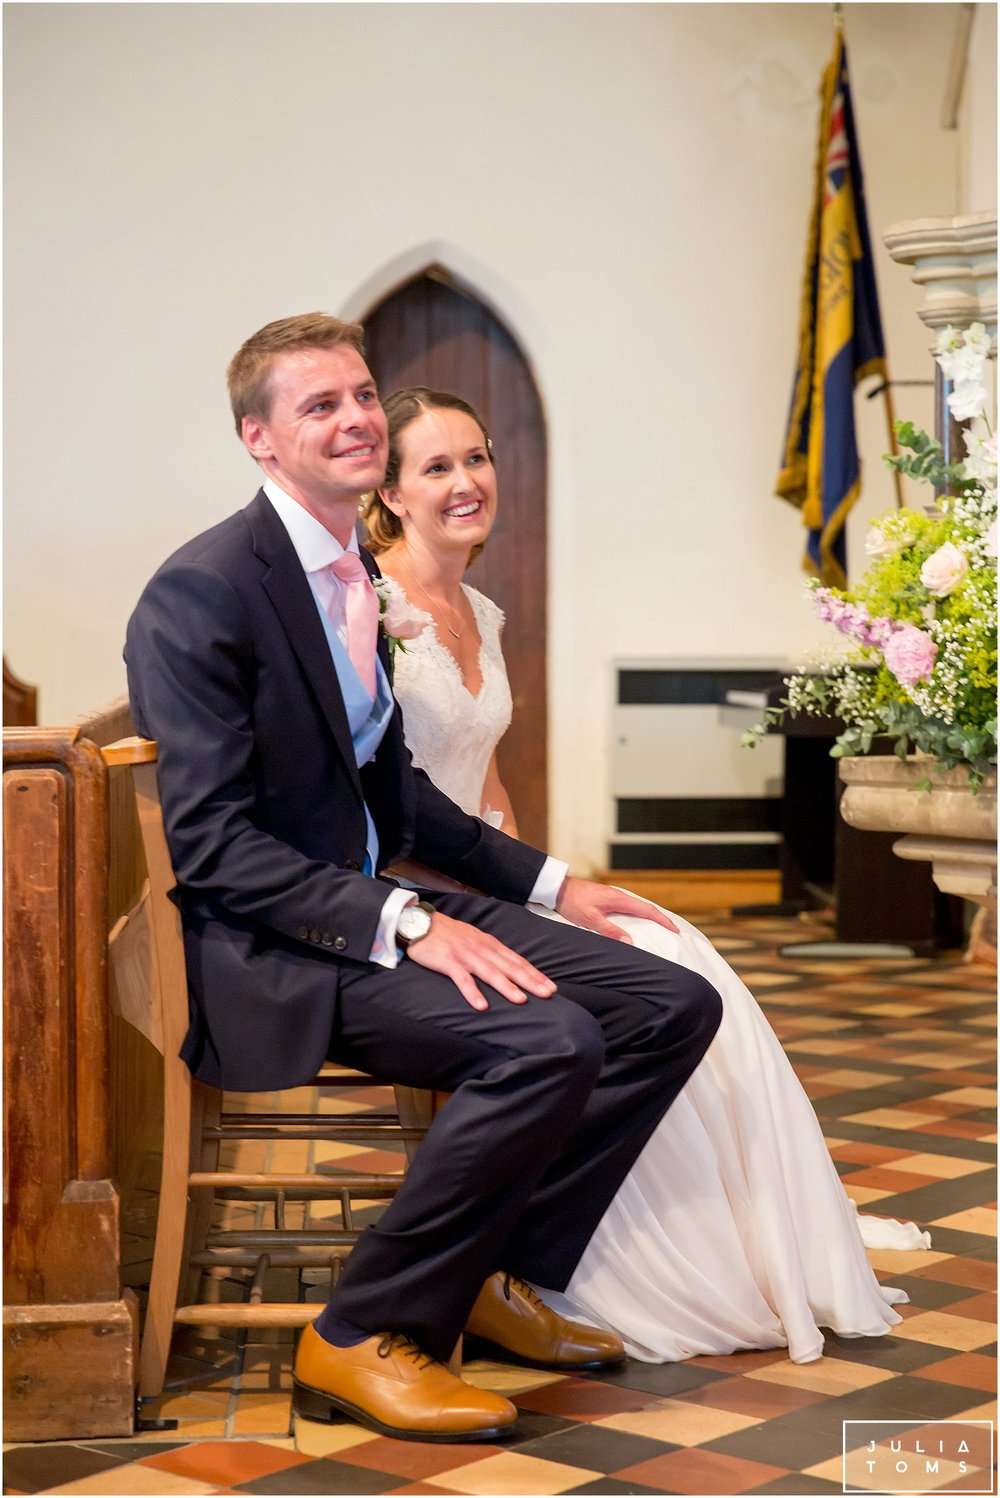 julia_toms_chichester_wedding_photographer_portsmouth_024.jpg